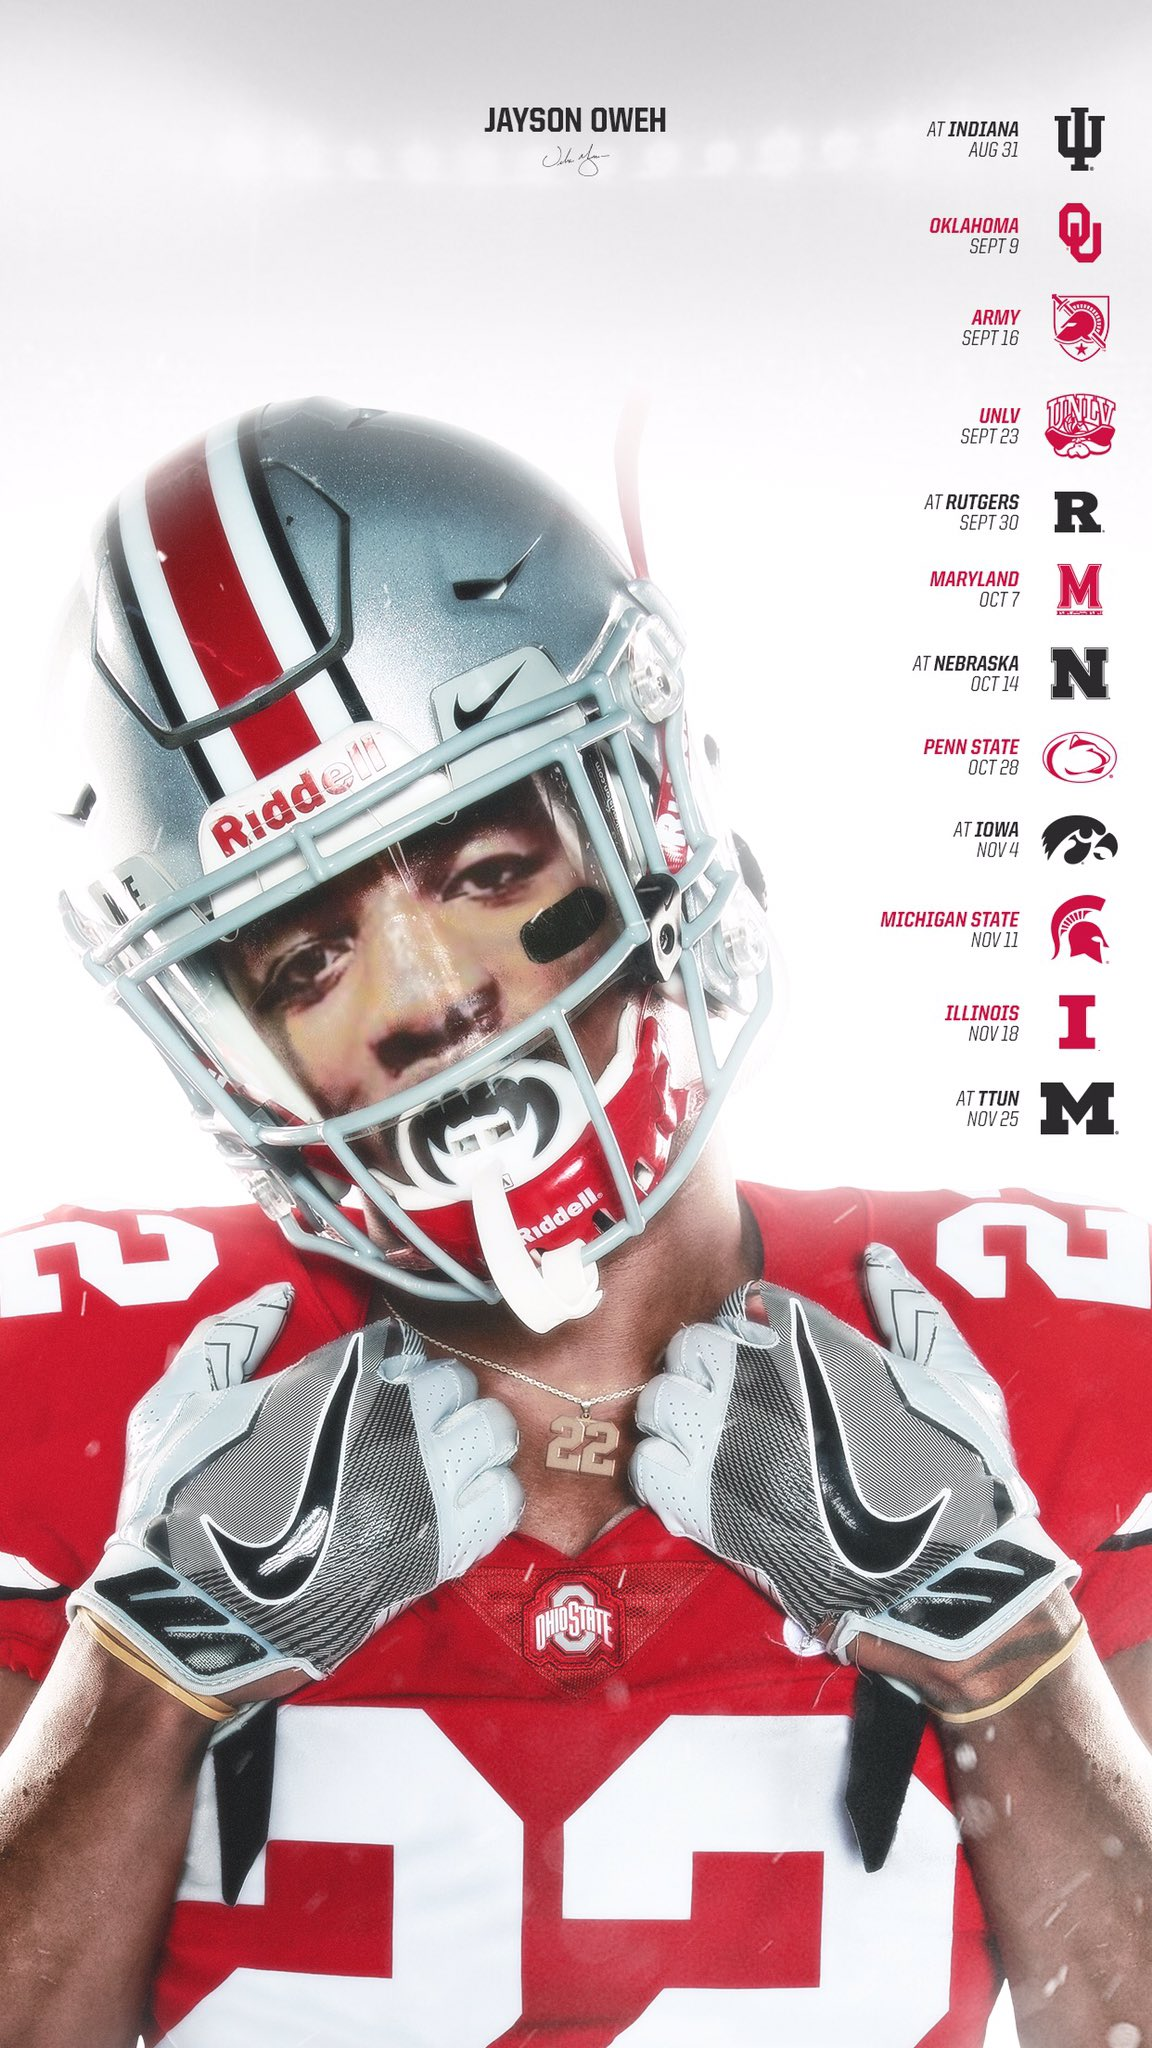 First time at a college game this weekend🔥 what's that Columbus atmosphere like?🌰⭕️🤔 https://t.co/ZVKbfgsuAY